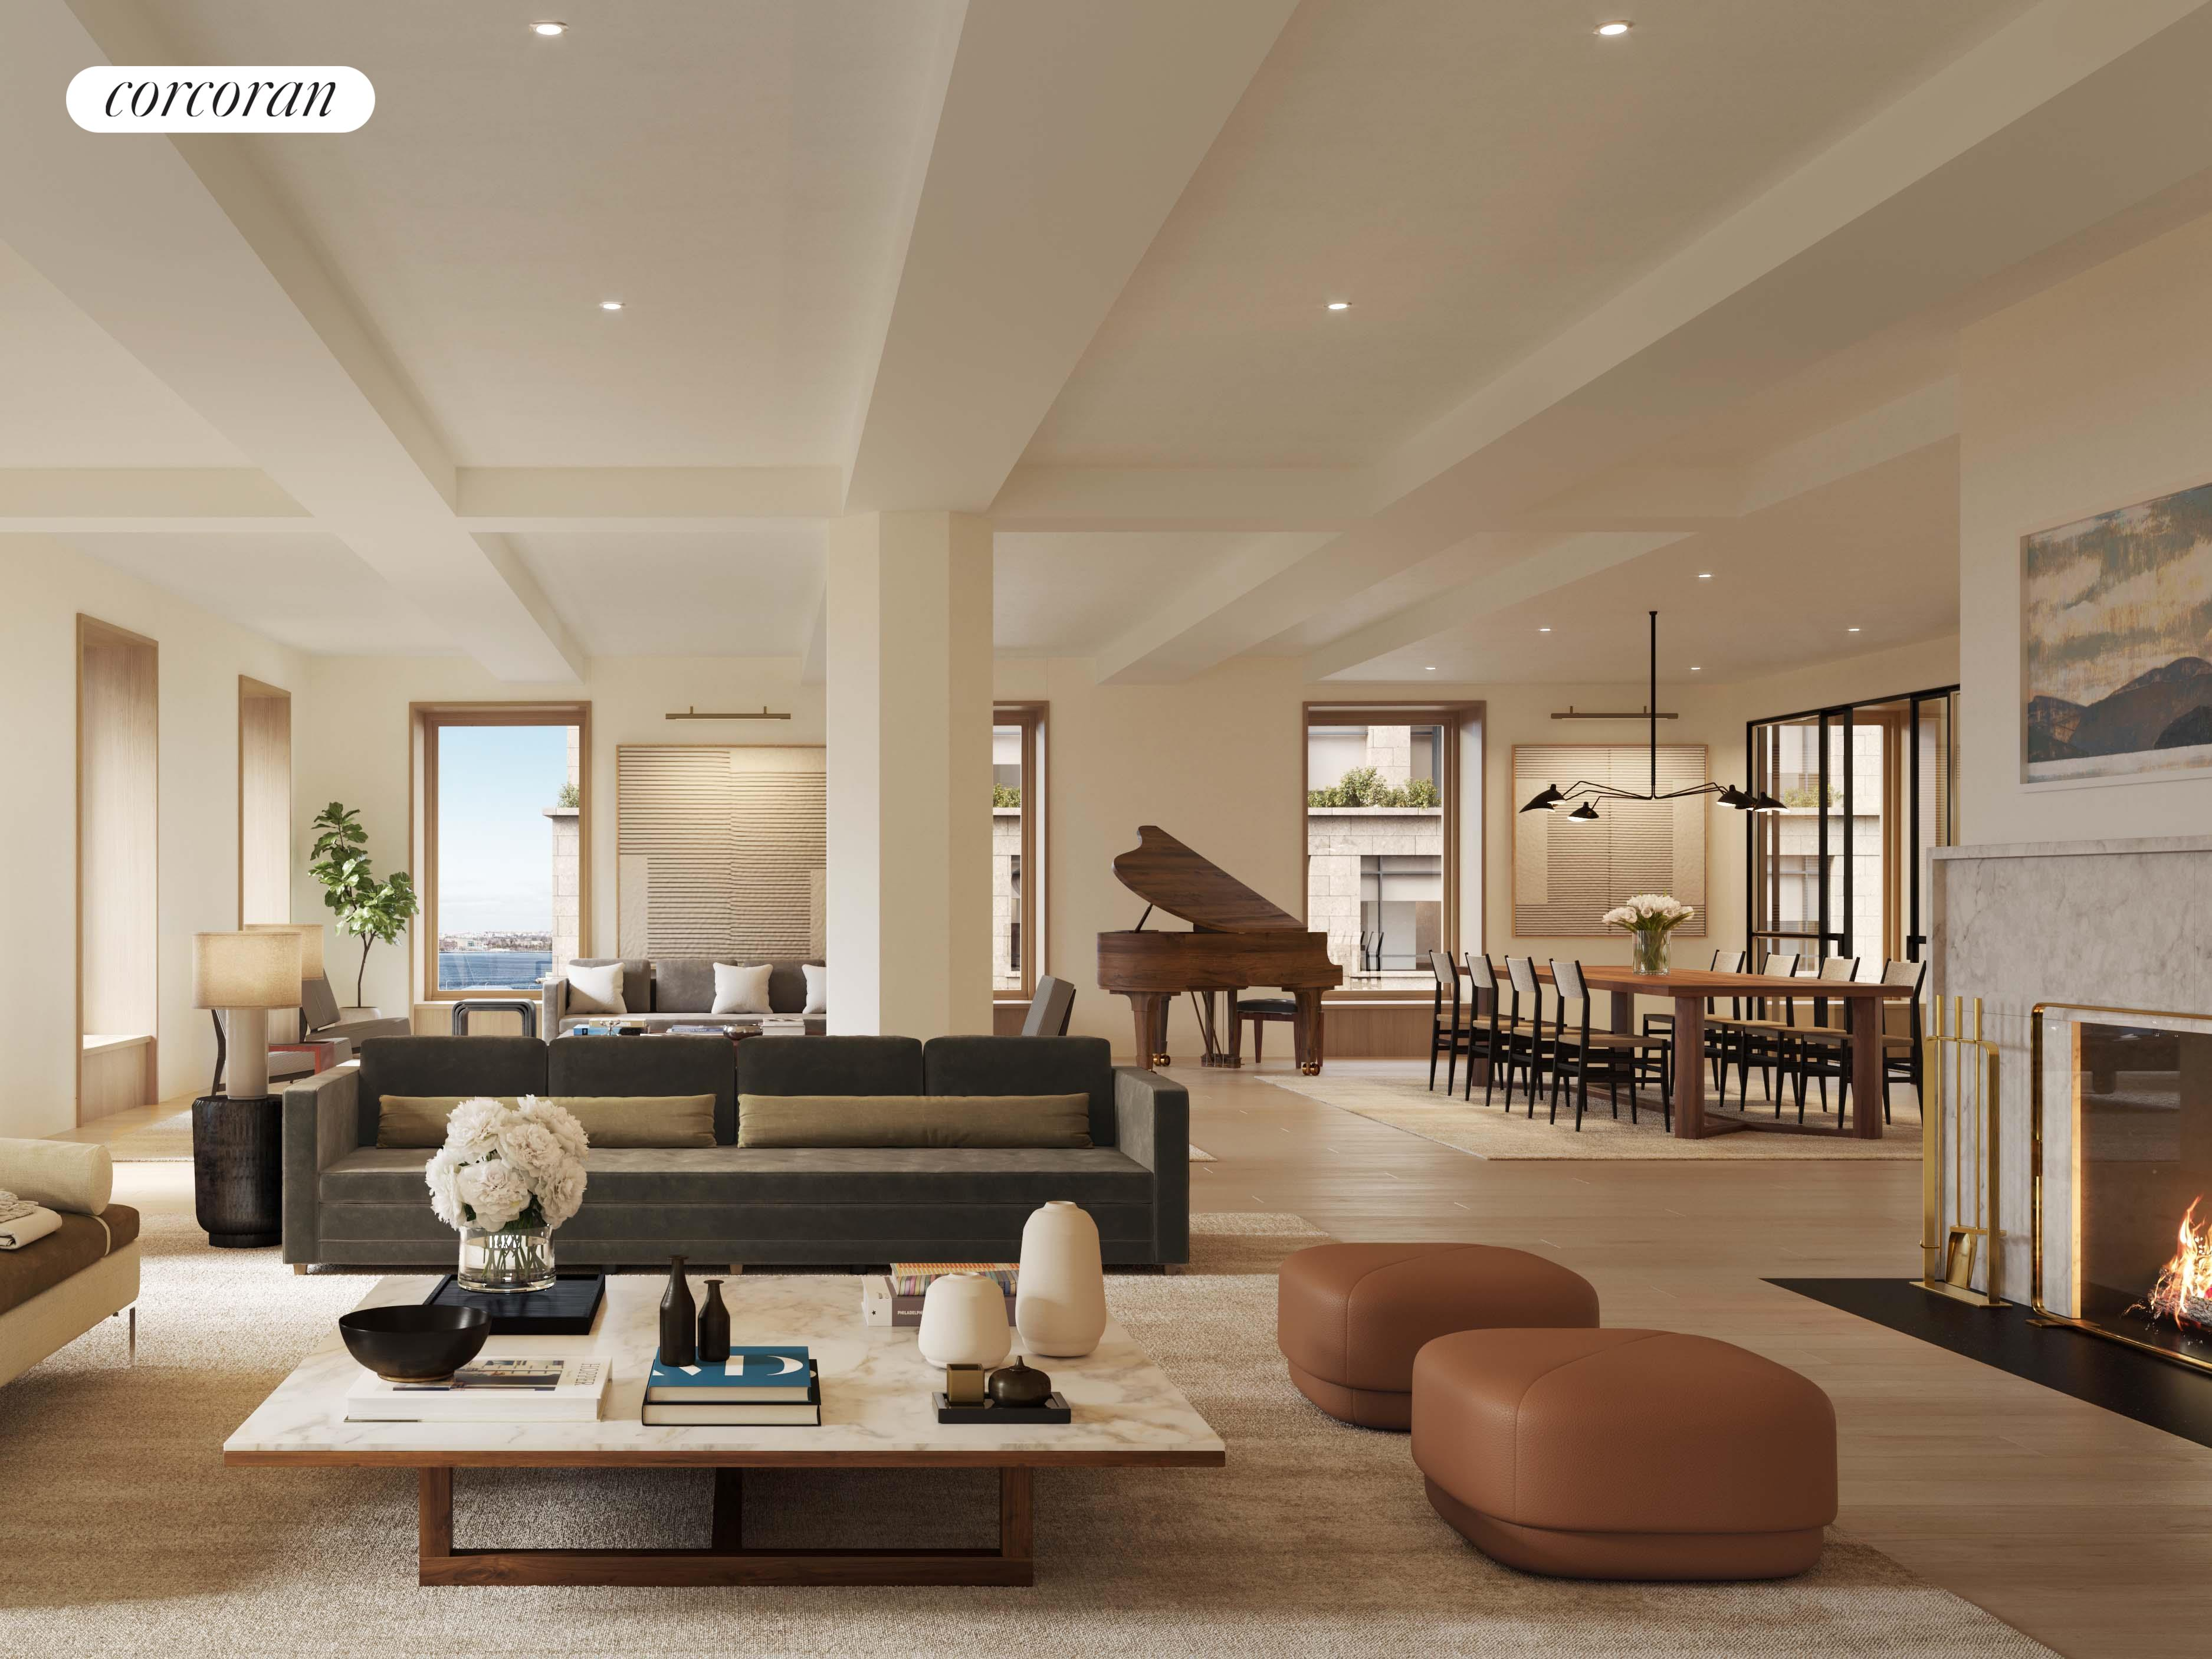 This magnificent full floor spans 5,794 square feet and enjoys light and views in 4 directions, including over 75 feet of direct Hudson River frontage. This home boasts 20 windows, 16 of which are wood-framed, highly engineered, large-scaled Albertini tilt & turn windows from Italy that enjoy full- or partial- Hudson River views. East and south facing bedrooms have oversized loft-style casement windows. The loft offers a dramatic corner great room (one of the all-time TriBeCa greats!) with over 1,500 square feet of living-entertaining space, and includes a custom gas fireplace with stone surround, and huge eat-in kitchen-living room with 3 large windows. The kitchen is appointed with brushed oak millwork, thick-slab Pentelico marble countertops with honed finish, a LaCanche range custom made in France, and a suite of Miele appliances. The range hood is fully vented to the outside. The residence has 6 bedrooms, 5-full bathrooms, a Blu de Savoie clad powder room, and a laundry room with sink. The super-luxurious primary suite faces the Hudson River, has 3 walk-in closets, and an over-sized spa-like bathroom with floor-to-ceiling Paonazzozetta honed marble slab walls and floors, a 6-foot Water Monopoly soaking tub, and large shower. Dornbracht fittings throughout and digitally-controlled radiant in-floor heating. Secondary bathrooms are clad in Bianco Dolomiti marble walls and have mosaic tile floors.67 Vestry is one of the last of Tribeca's historic properties, and has been developed into a 13-unit, 12-story condominium, designed by Gachot Studios and BP Architects, and currently under construction. Amenities include a fulltime doorman, porter, fitness center, 50-foot lap pool in a double-height paneled room, sauna and steam areas, package room, bike storage as well as available storage for purchase. 67 Vestry lofts offer Hudson River and sky views. This 1890s Romanesque Revival loft building is developed by Iliad Realty Group and 7G Realty. Reimagined by AD 100 list 